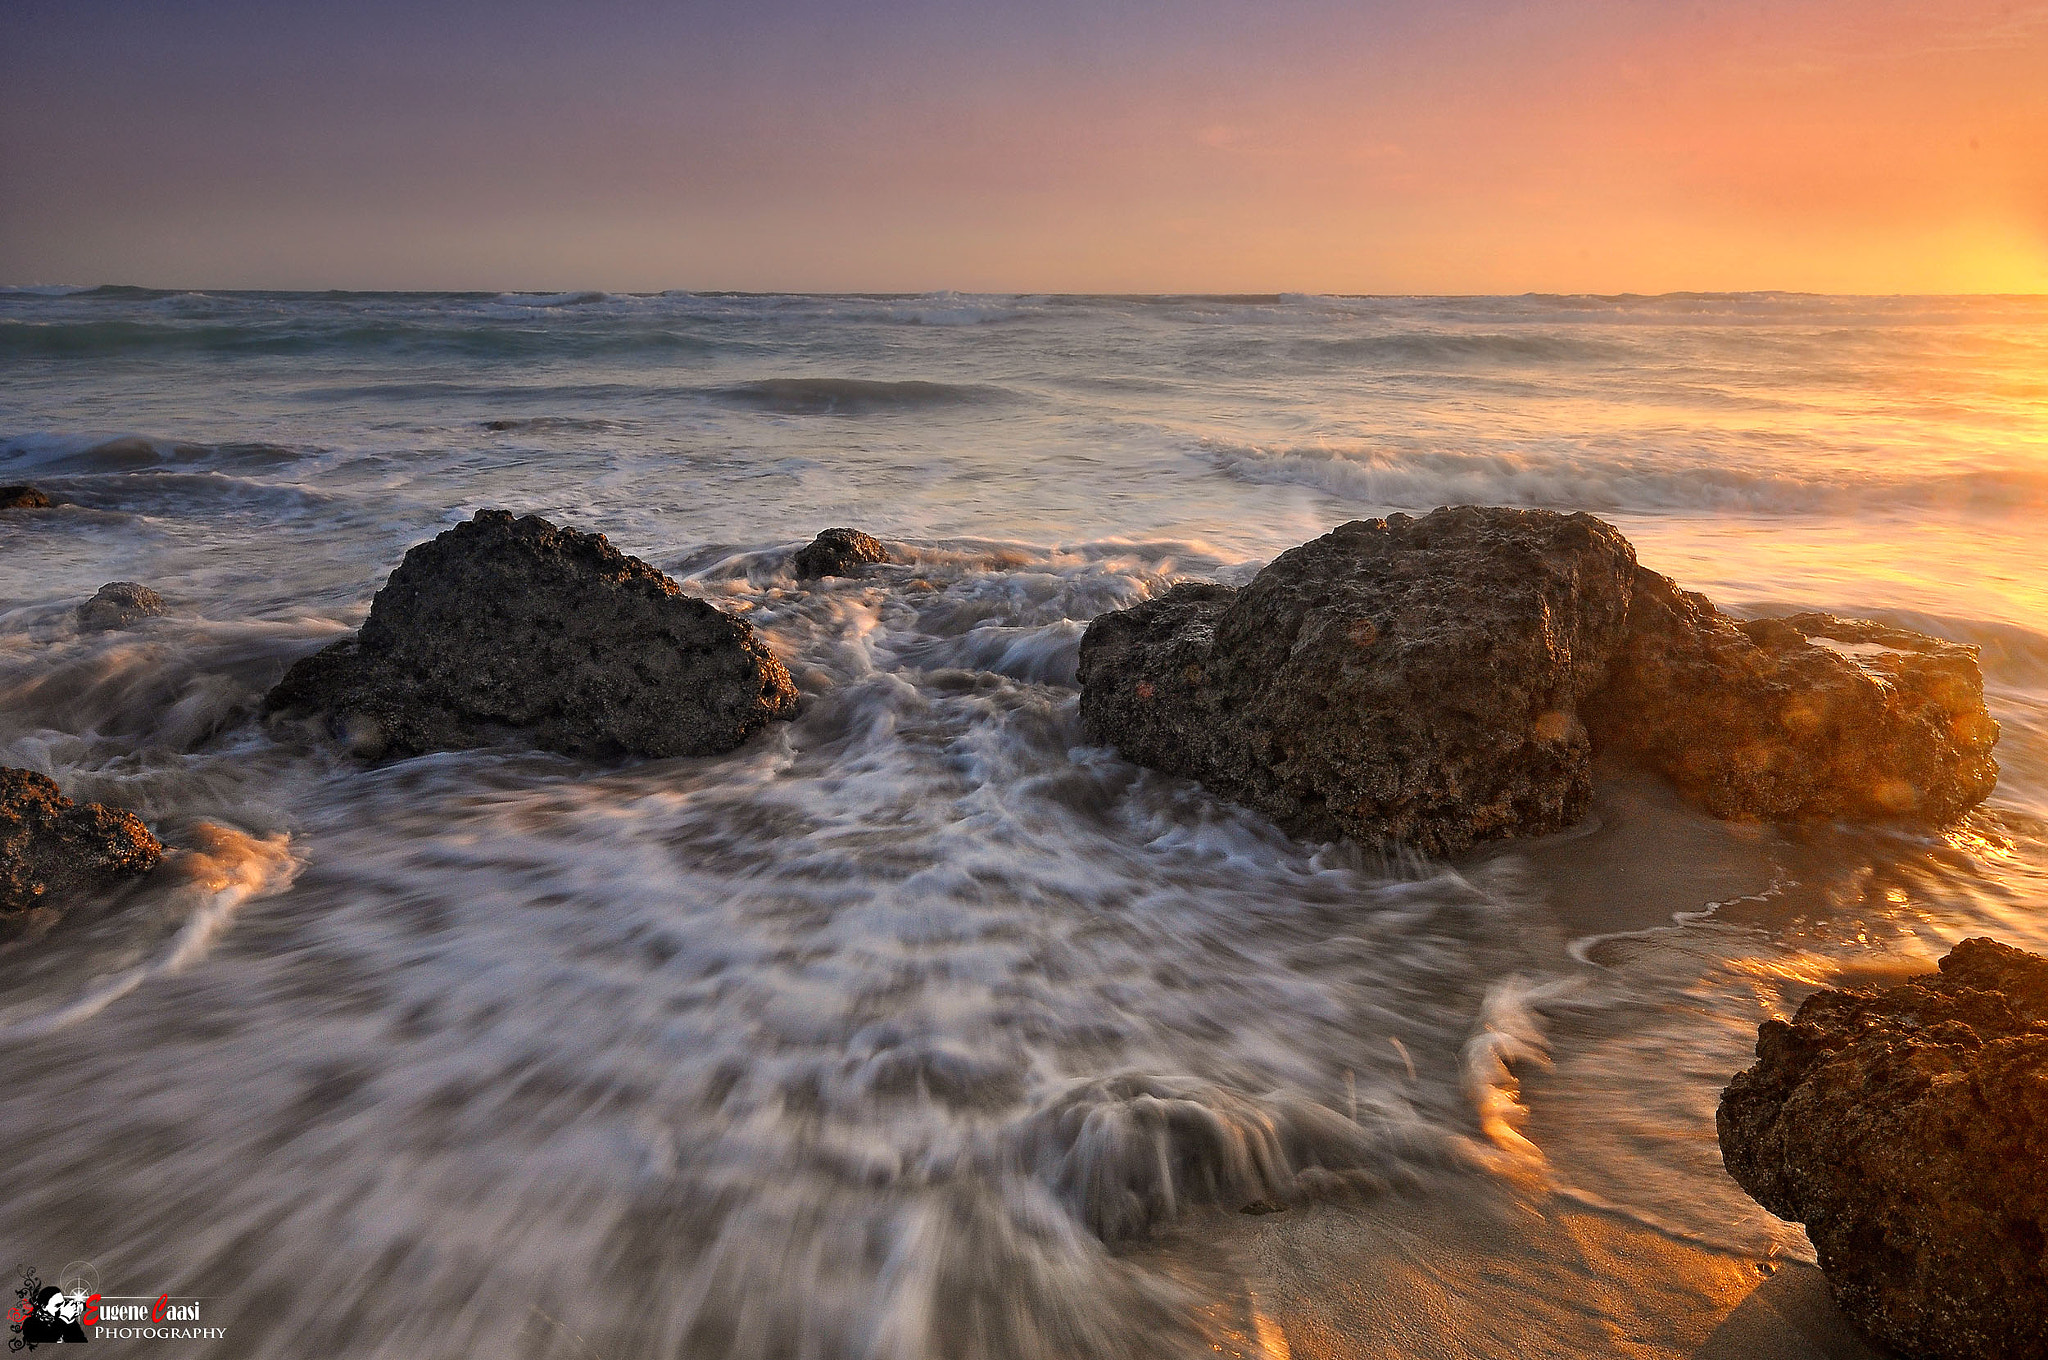 Photograph TIDAL EBB by Eugene Caasi on 500px